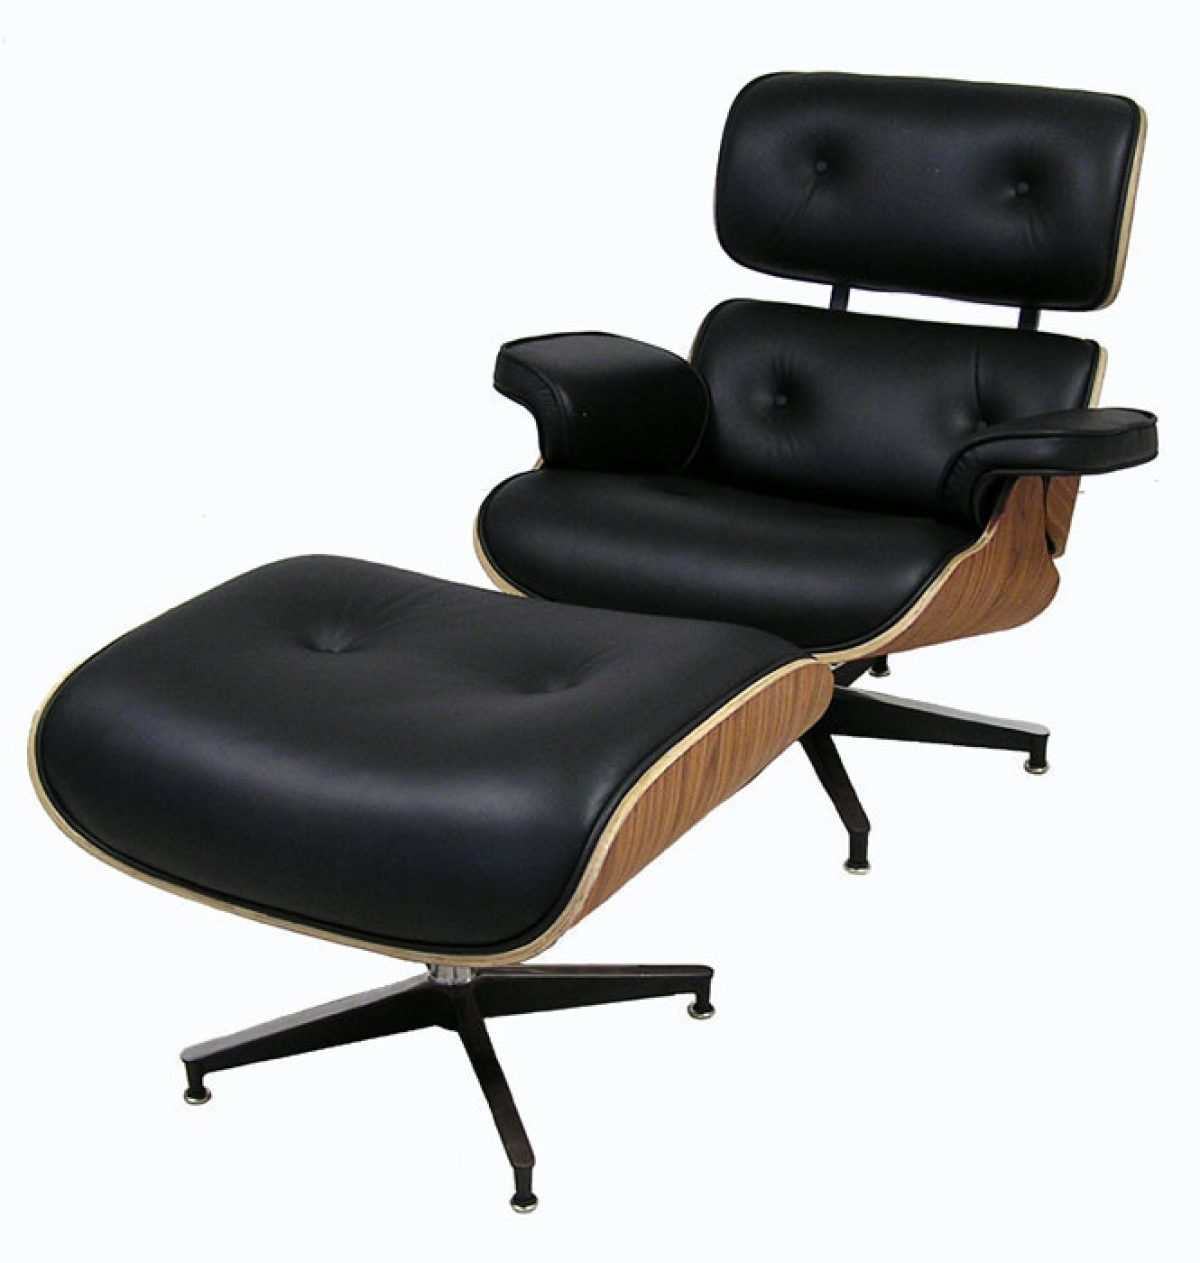 Reproduction Eames Chair Rosewood Leather